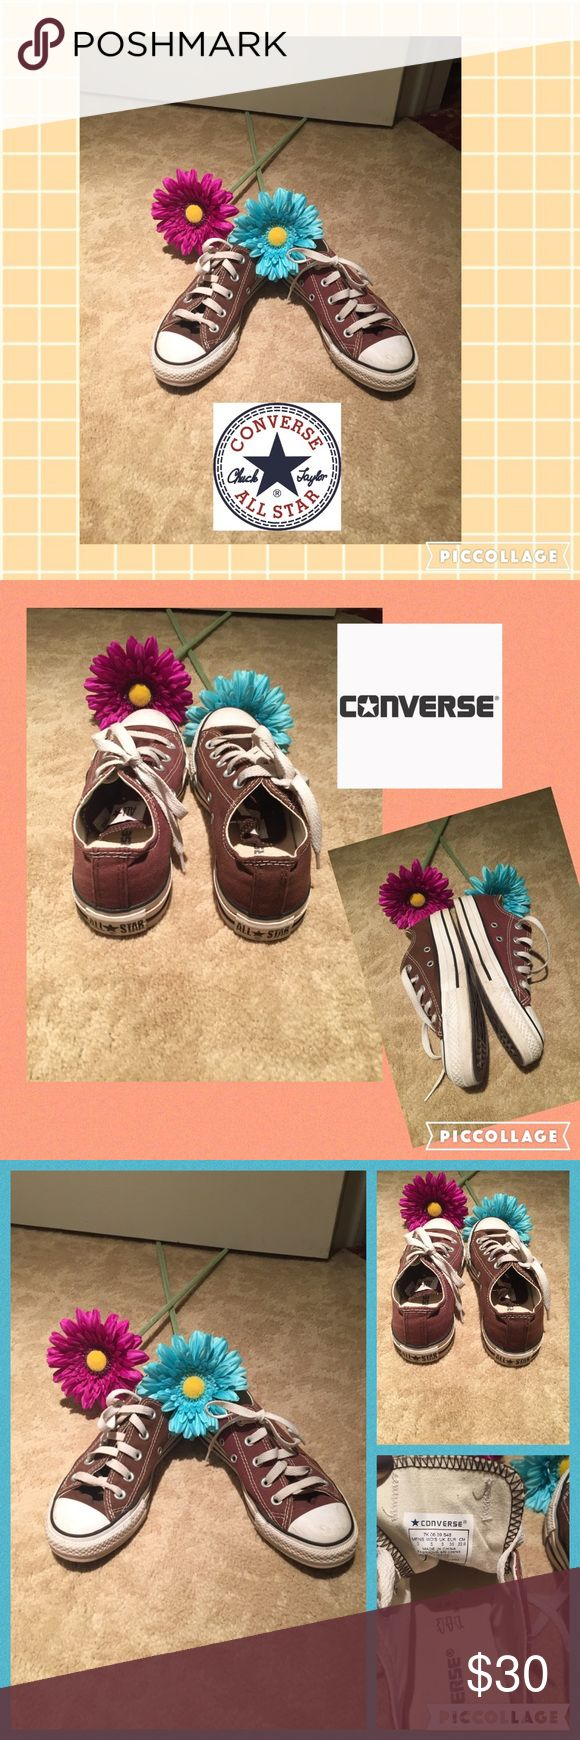 ⭐️Converse all star sneakers⭐️ Chocolate brown converse all star sneakers w laces. Gentle ware and have plenty of life left!! These are a size 5. I am a 5.5 and they fit me perfectly. Converse Shoes Sneakers